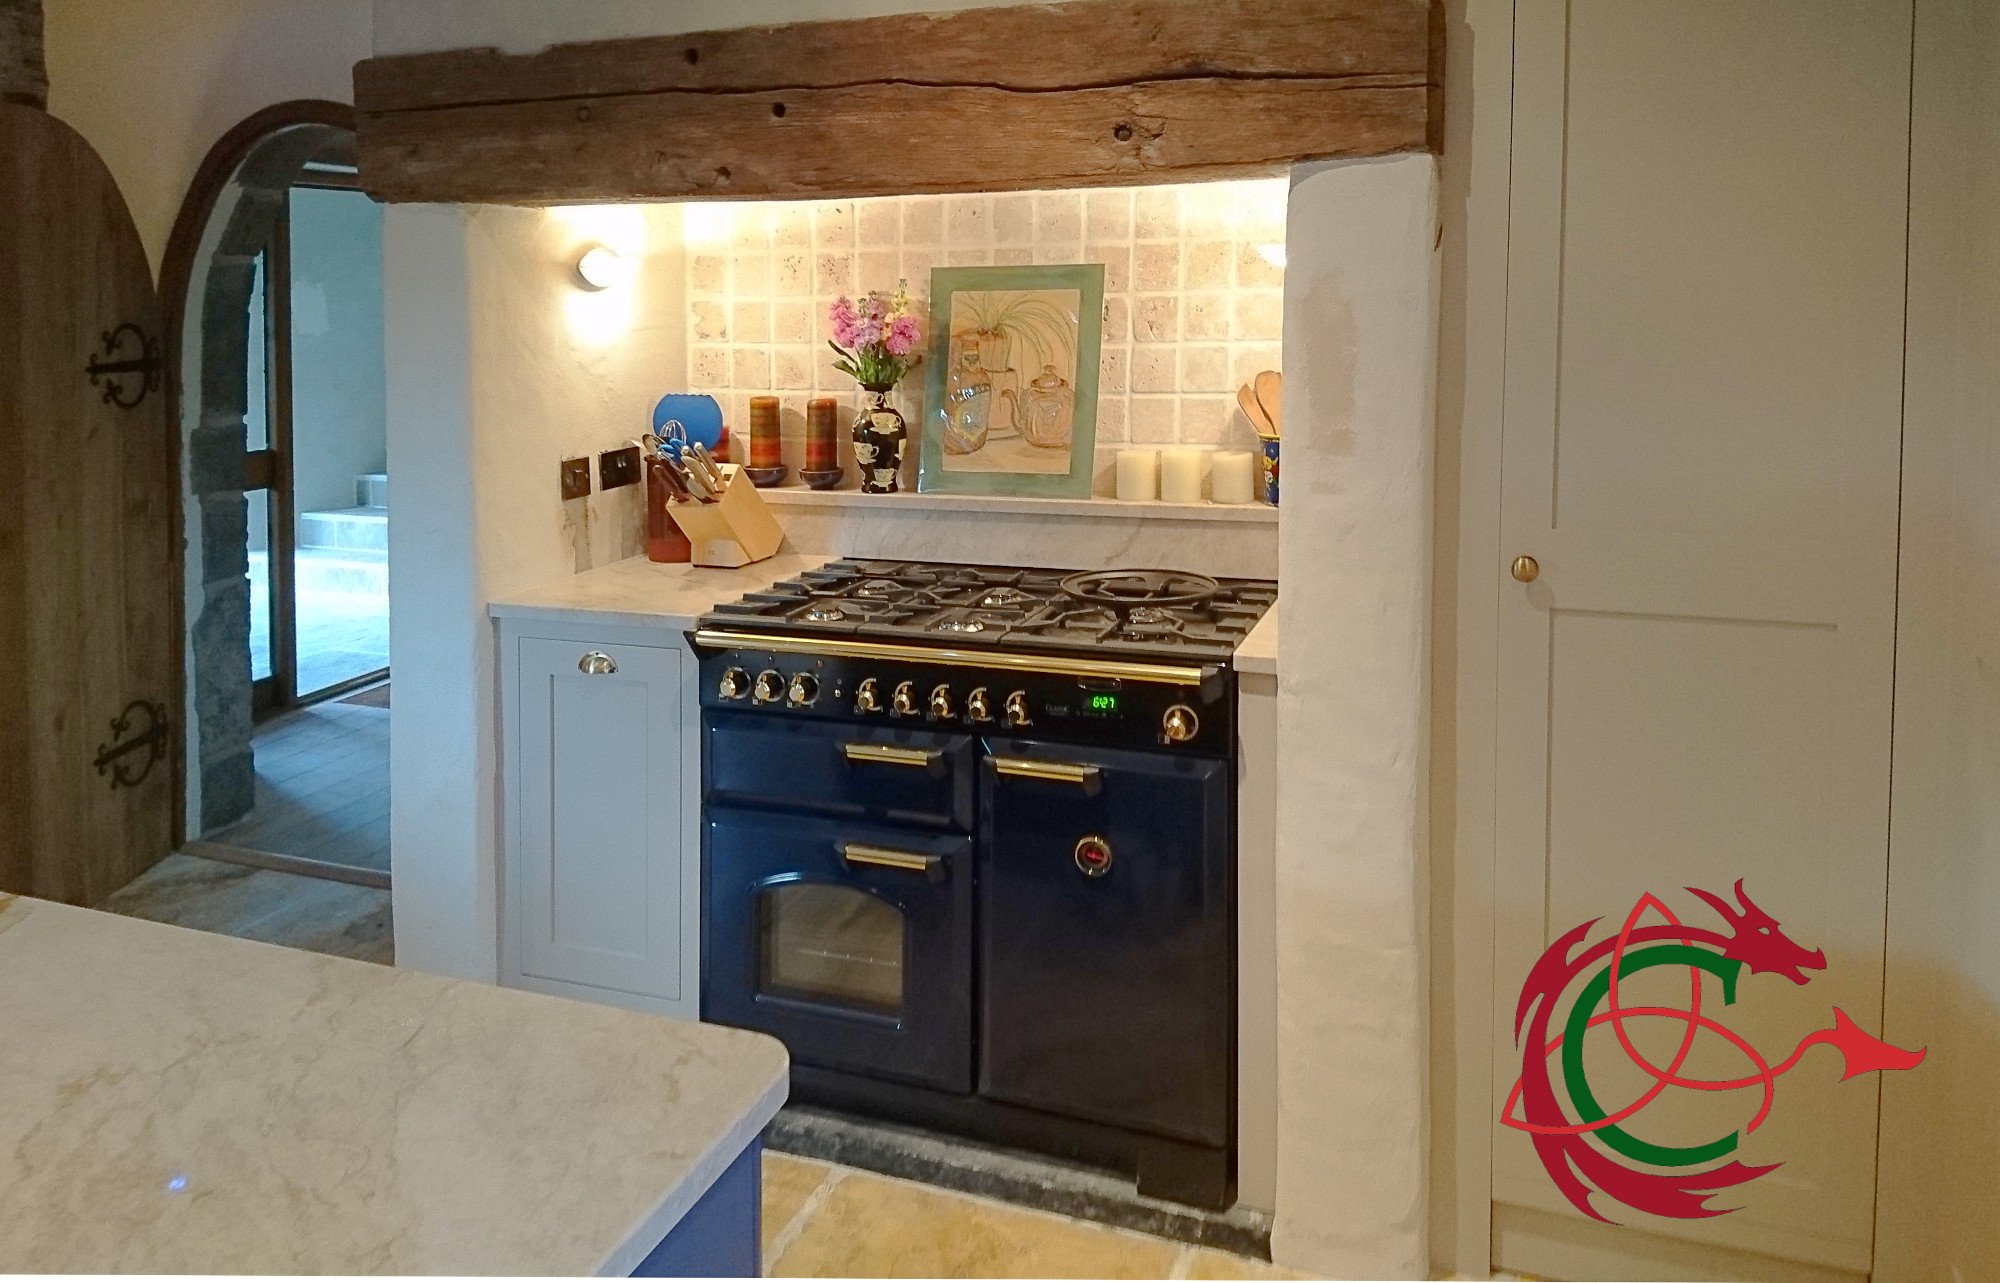 Inglenook in West Wales barn conversion oak beam range cooker